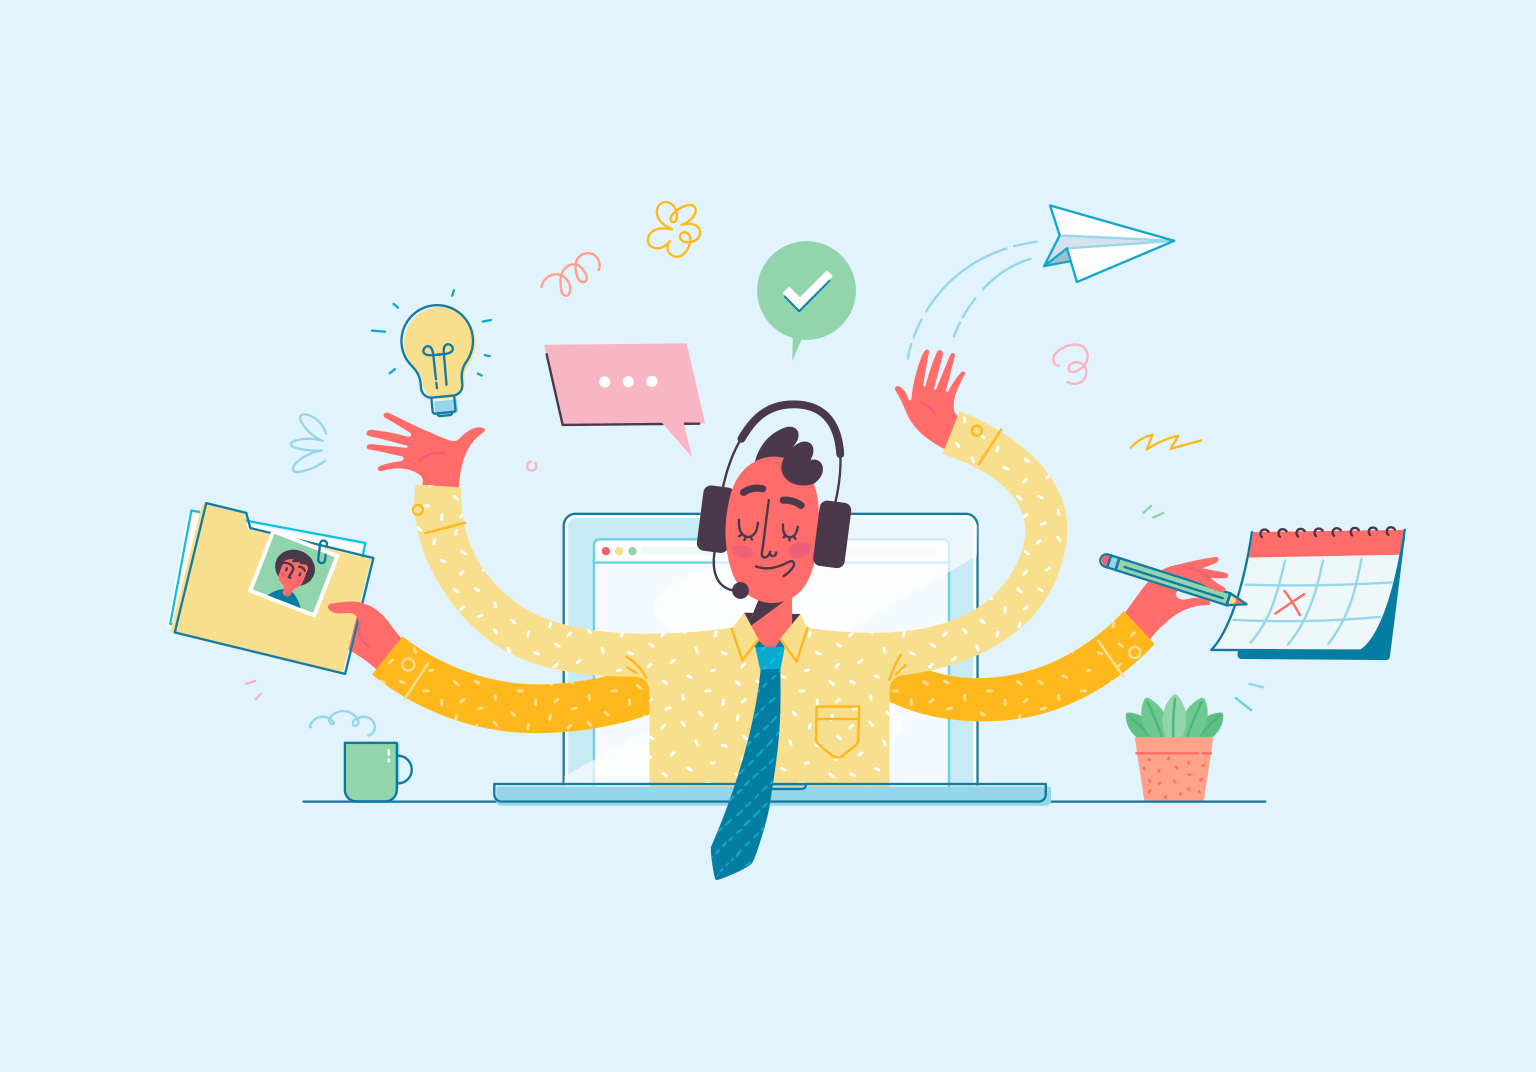 An illustration of a person with four arms and a headset 'juggling' office tasks